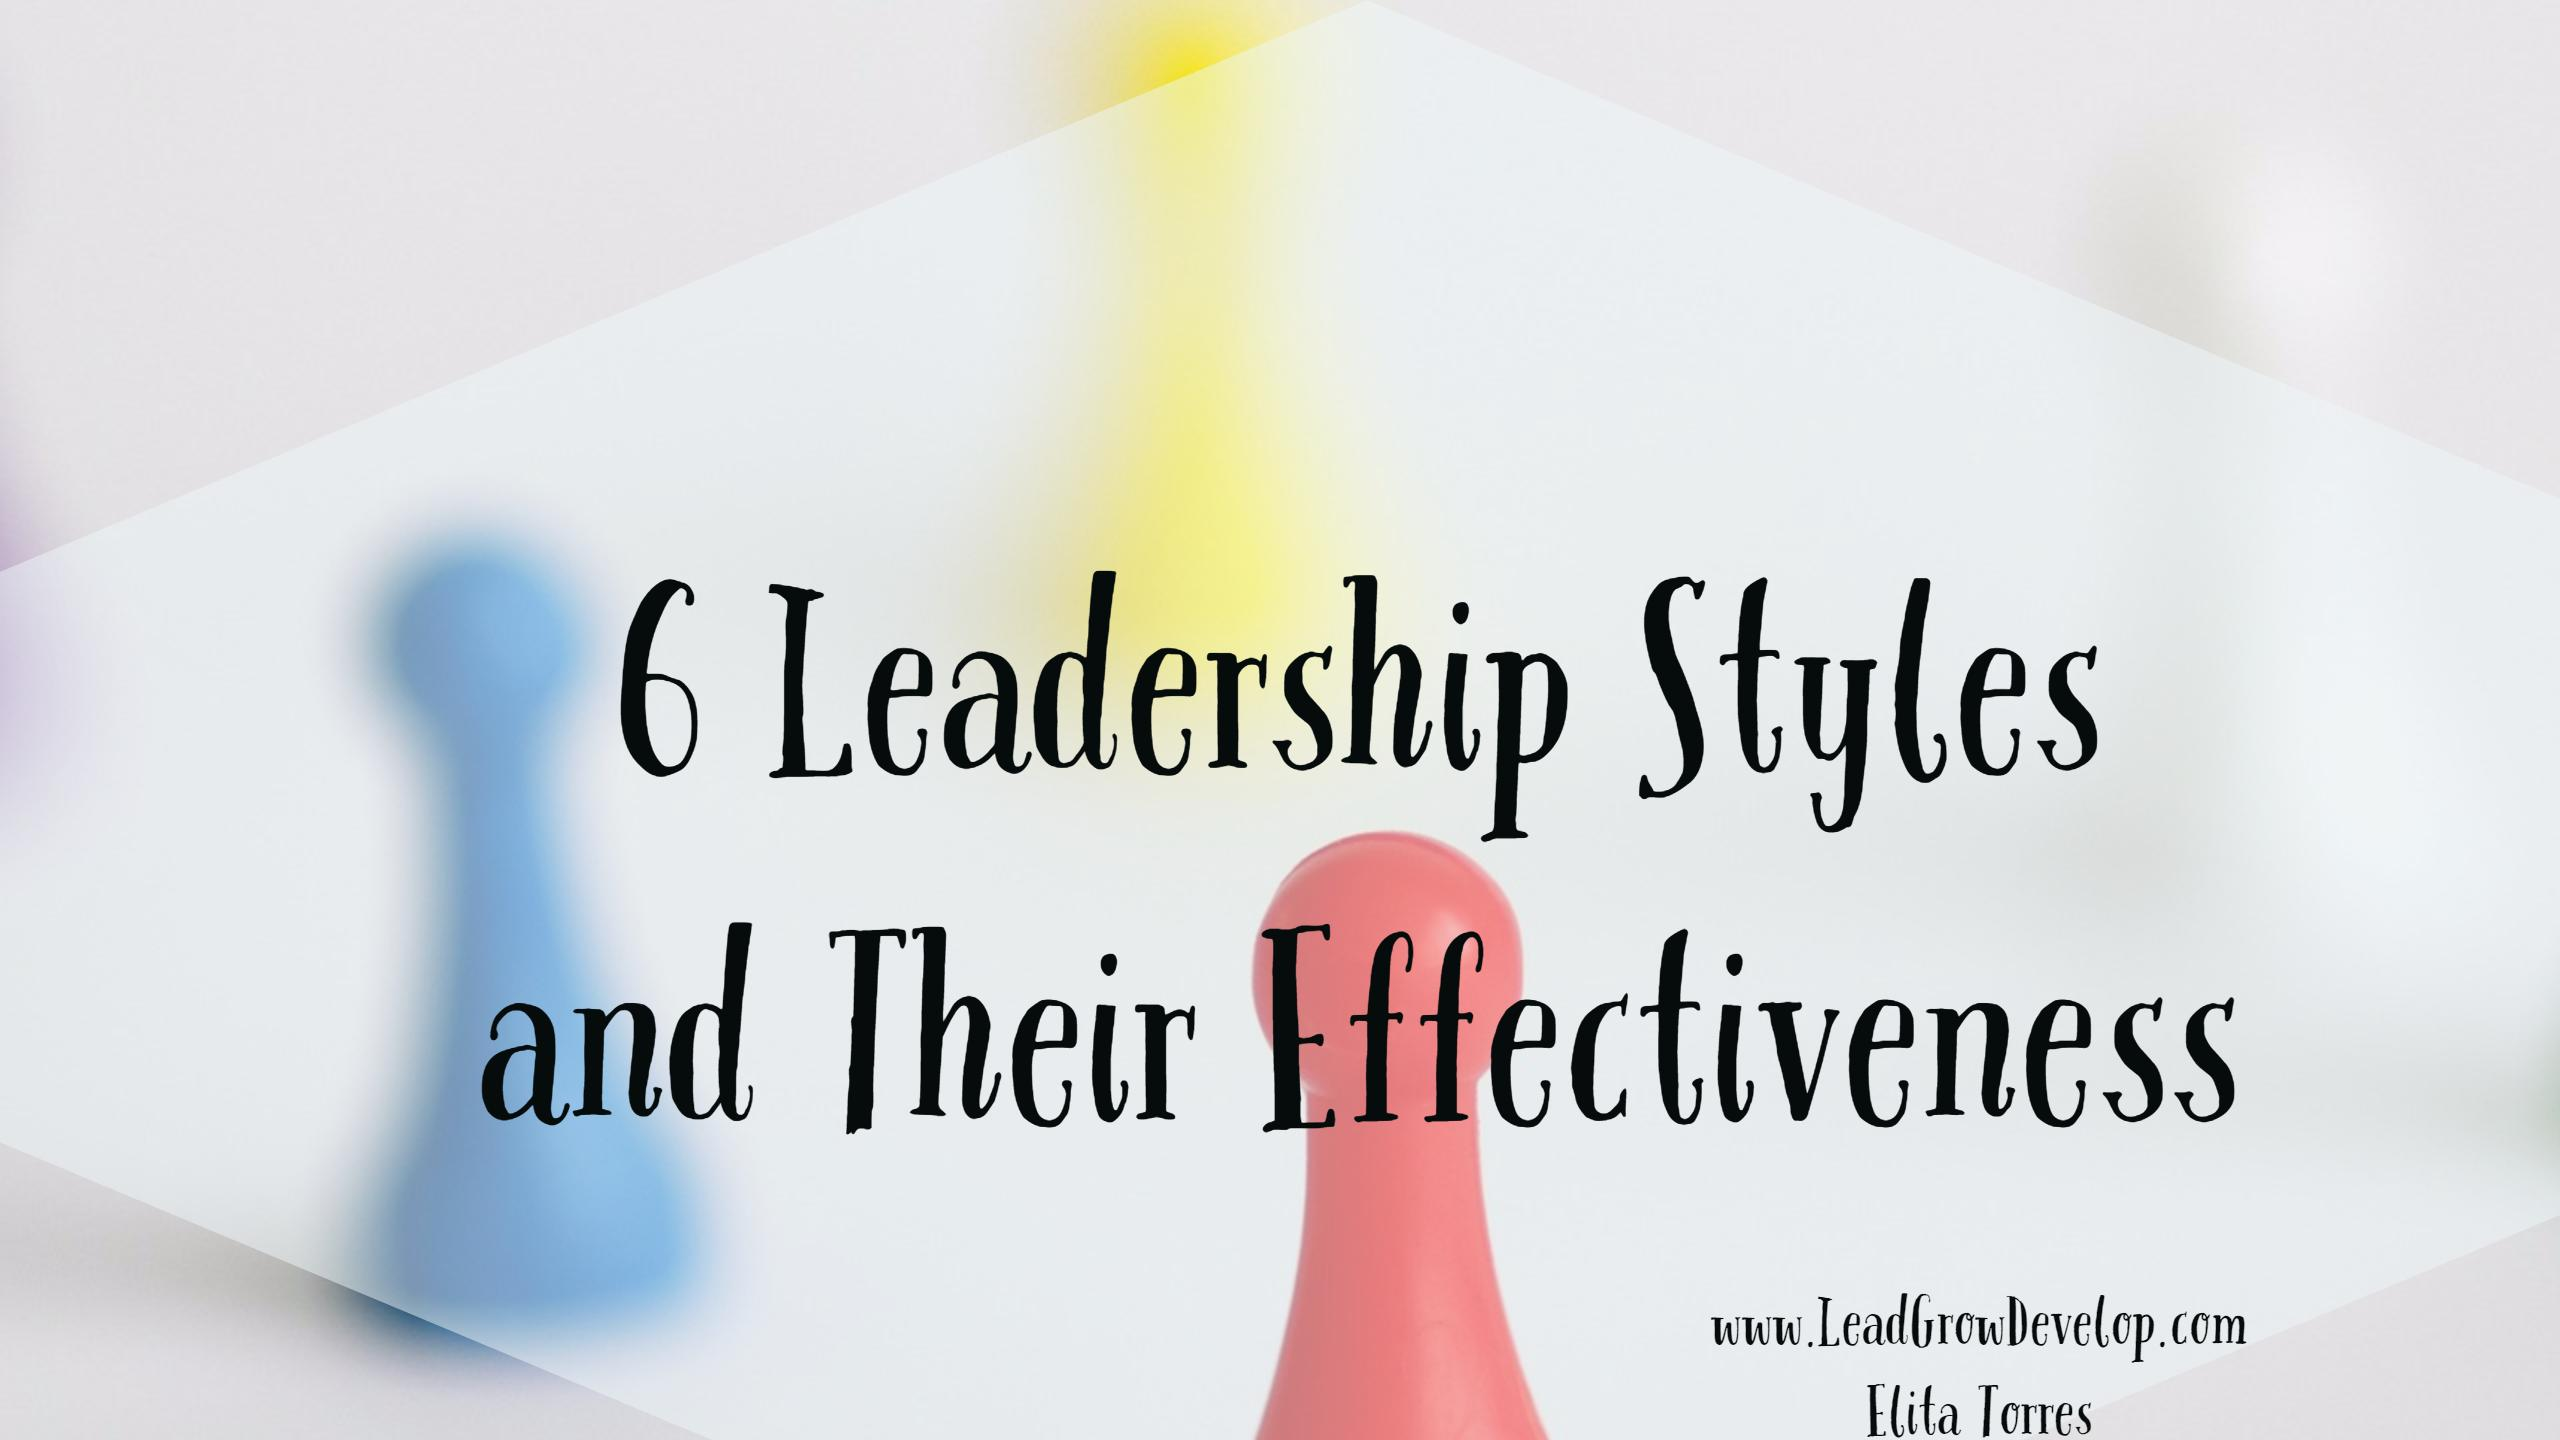 6-leadership-styles-and-their-effectiveness